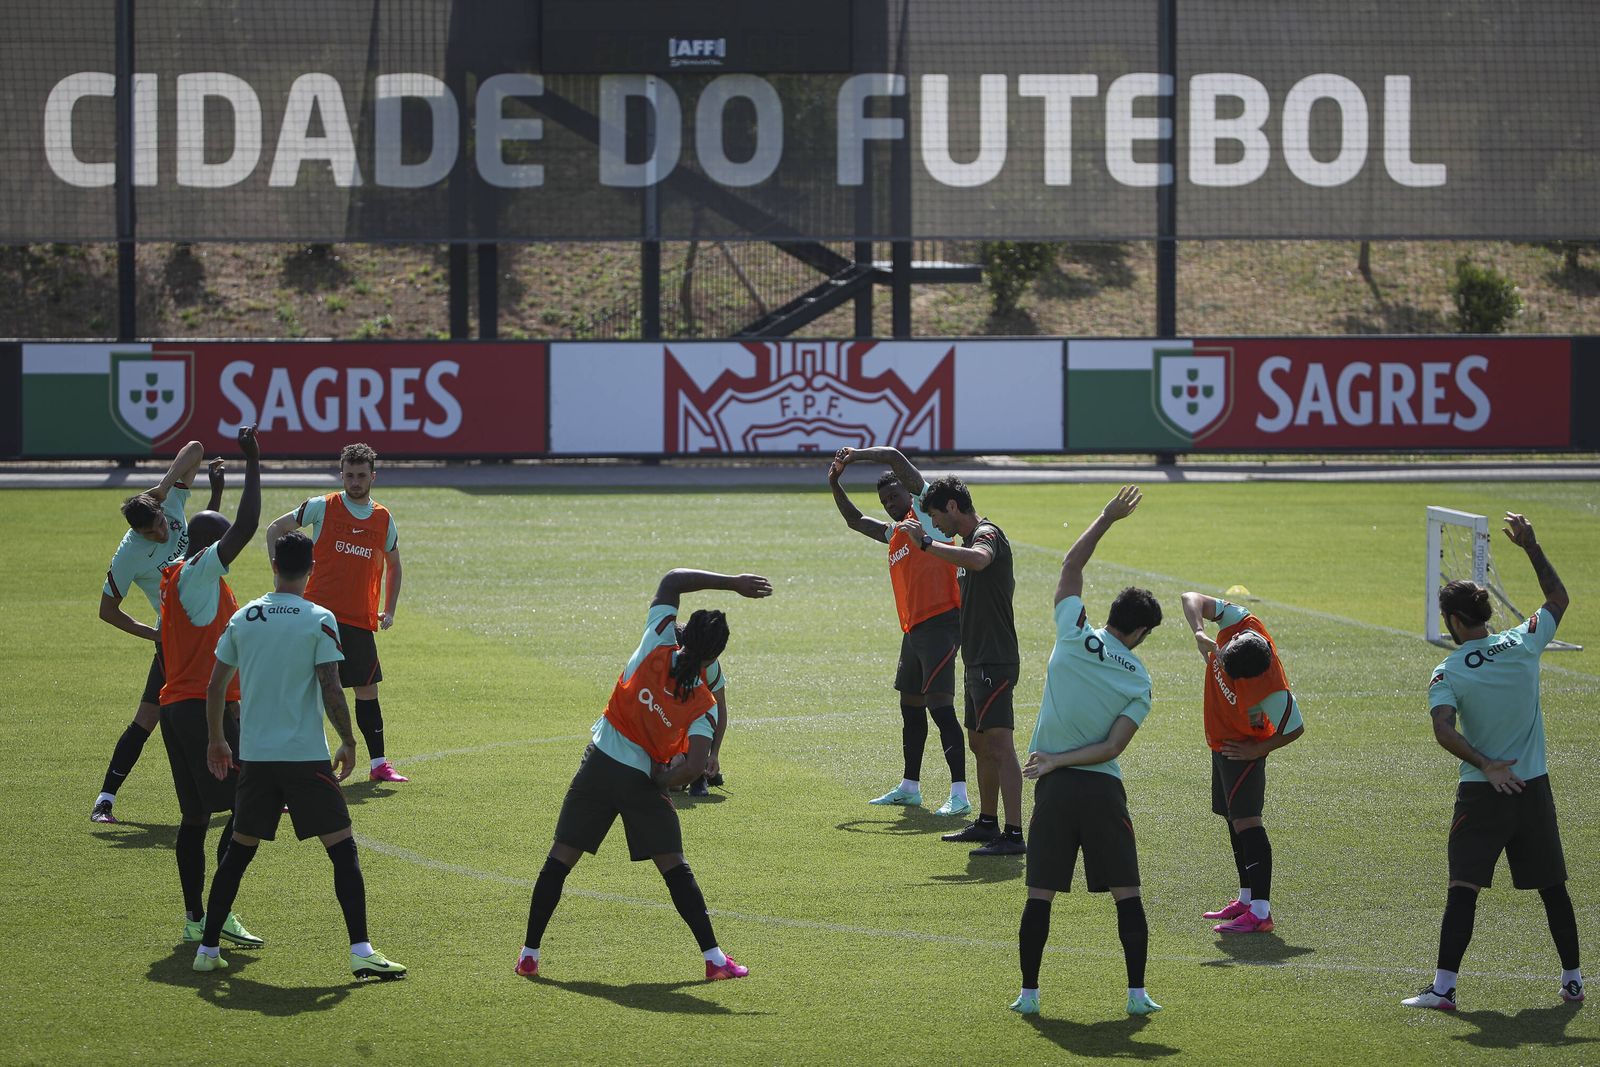 EURO 2021, Nationalteam Portugal Training Training of the AA selection of Portugal Oeiras, 06/10/2021 - Training for the